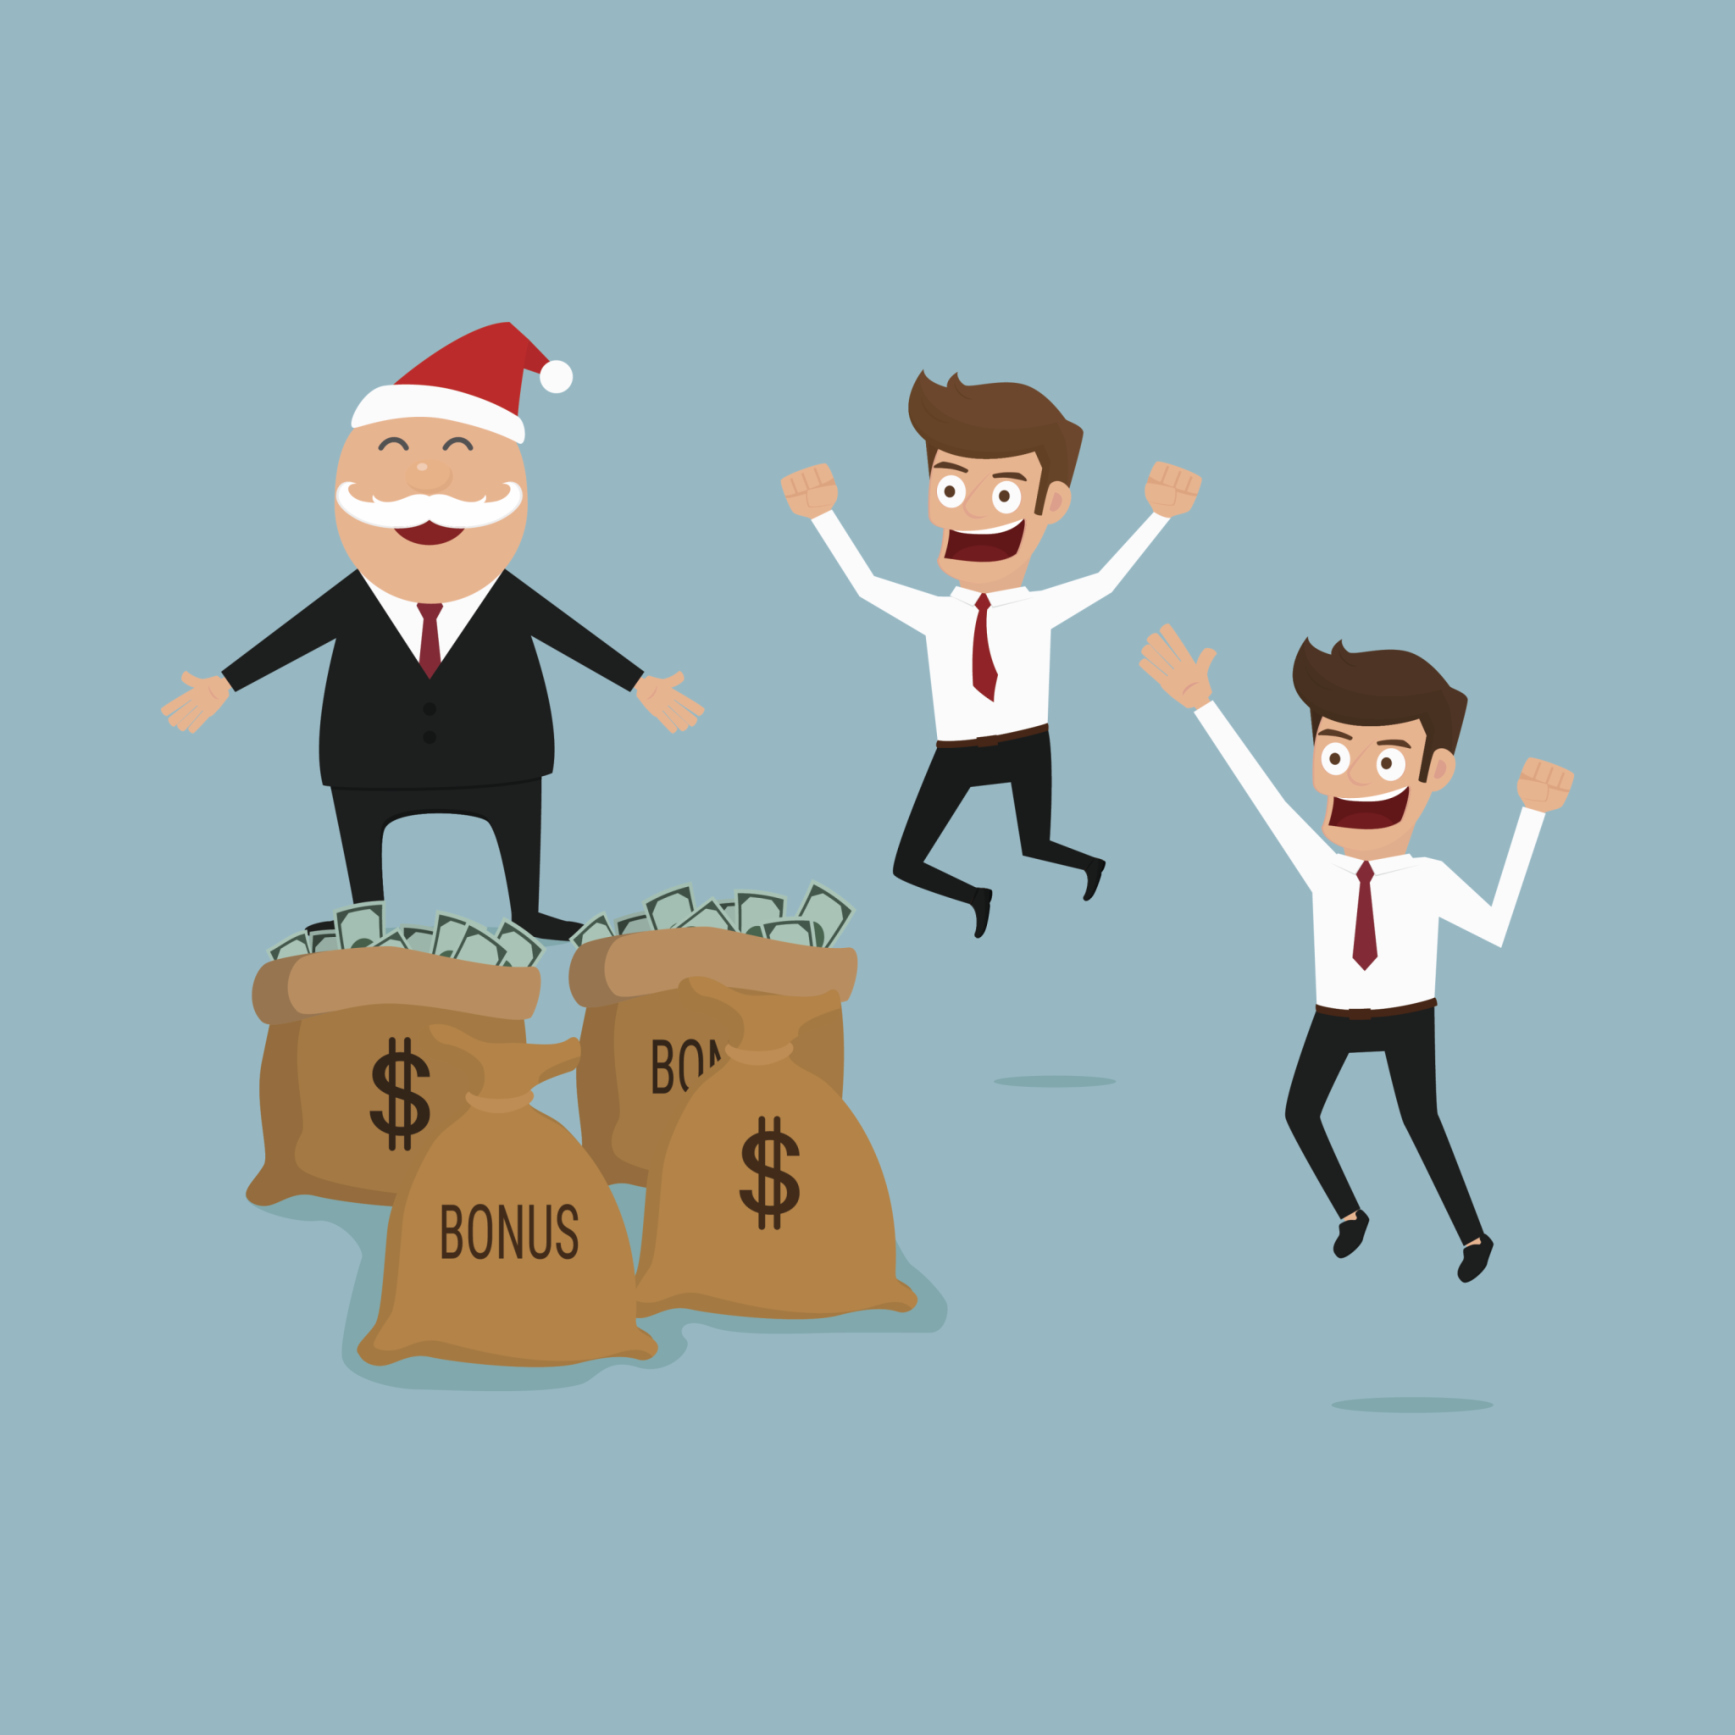 Fewer American workers expecting holiday bonuses, raises